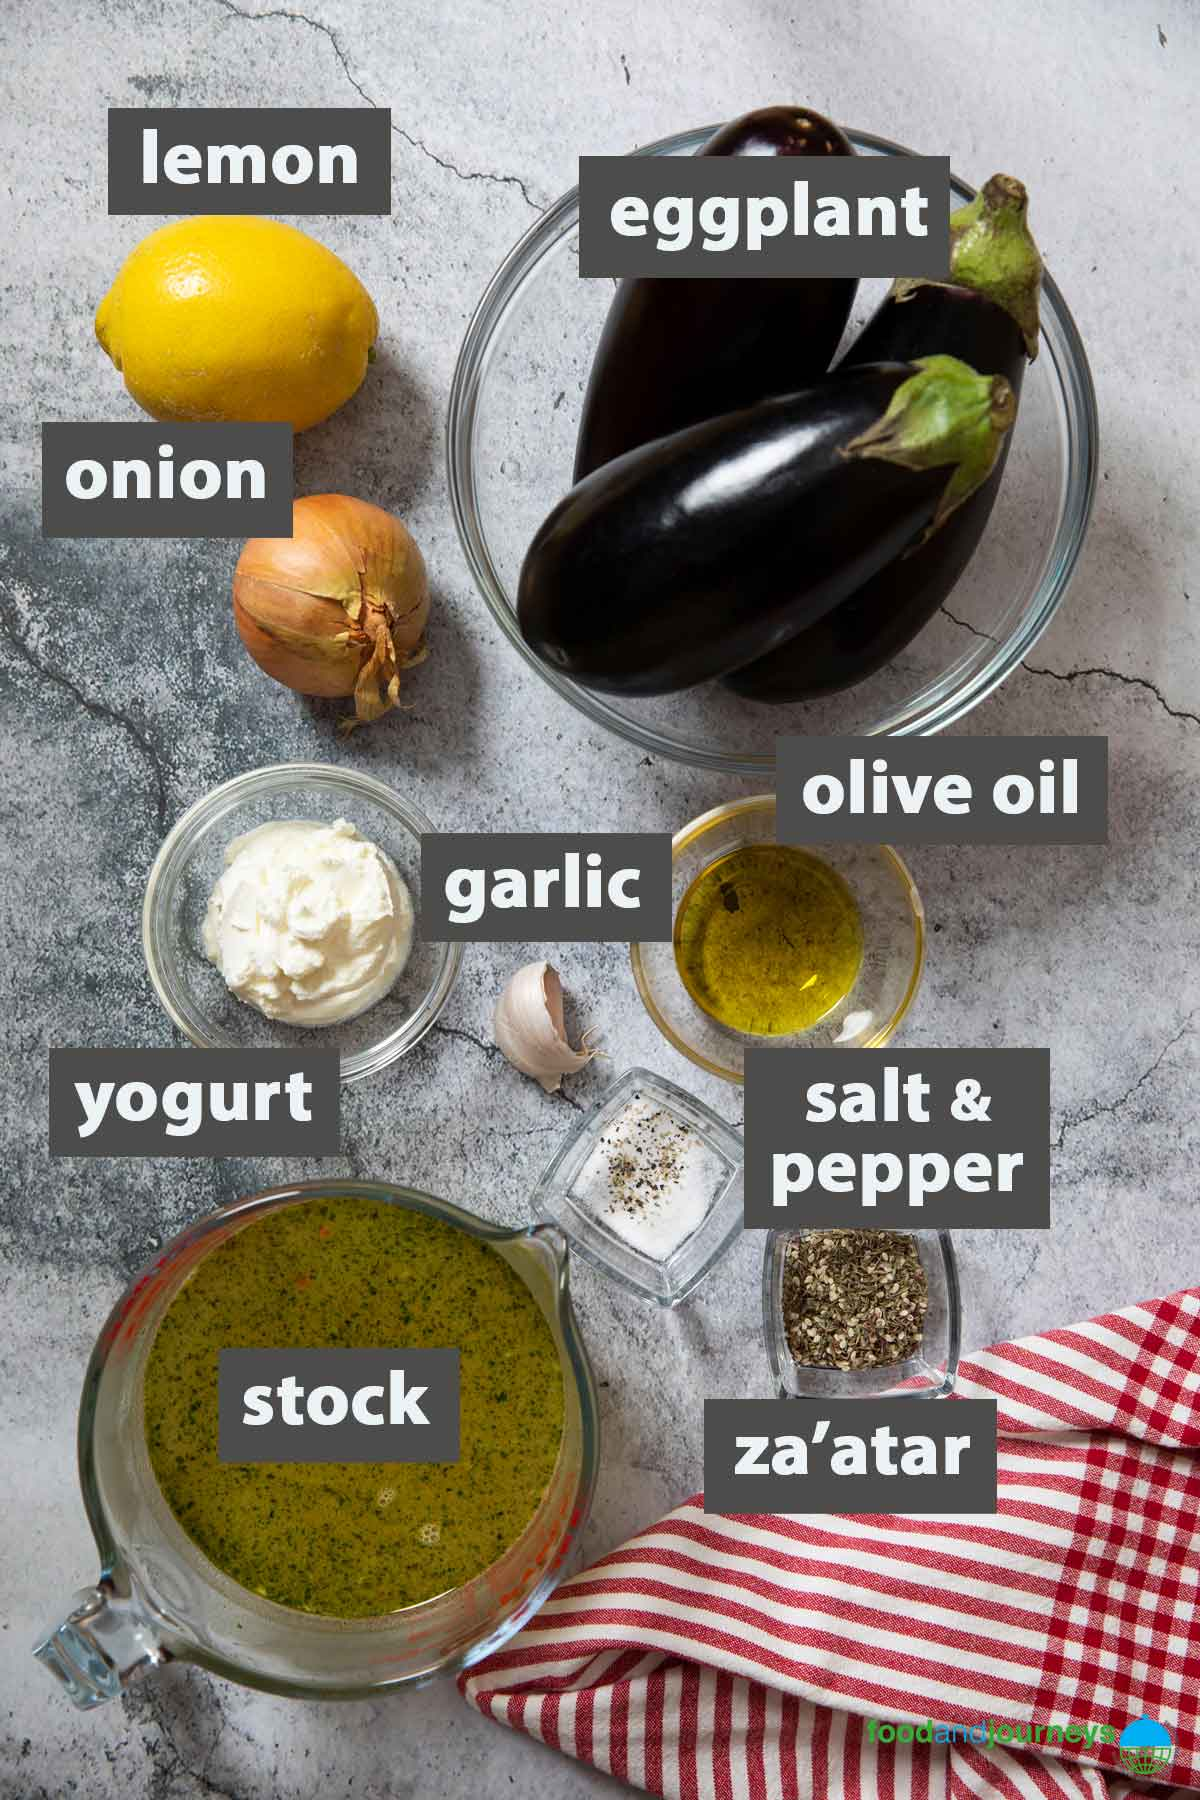 An image showing all the ingredients you need to prepare Eggplant Soup at home.